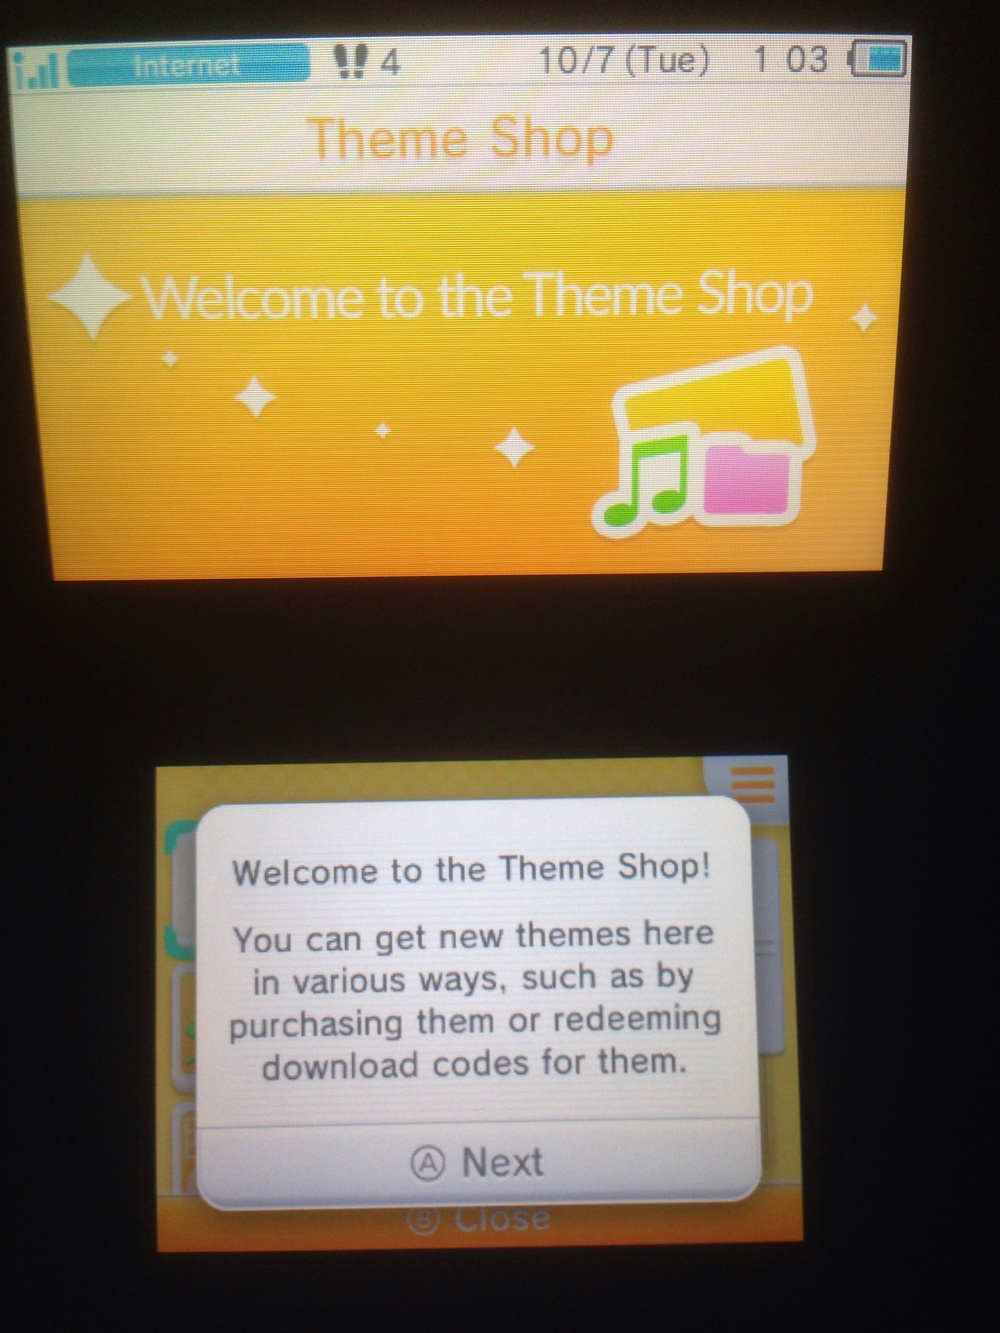 I wonder if some games will come with special codes for custom themes...